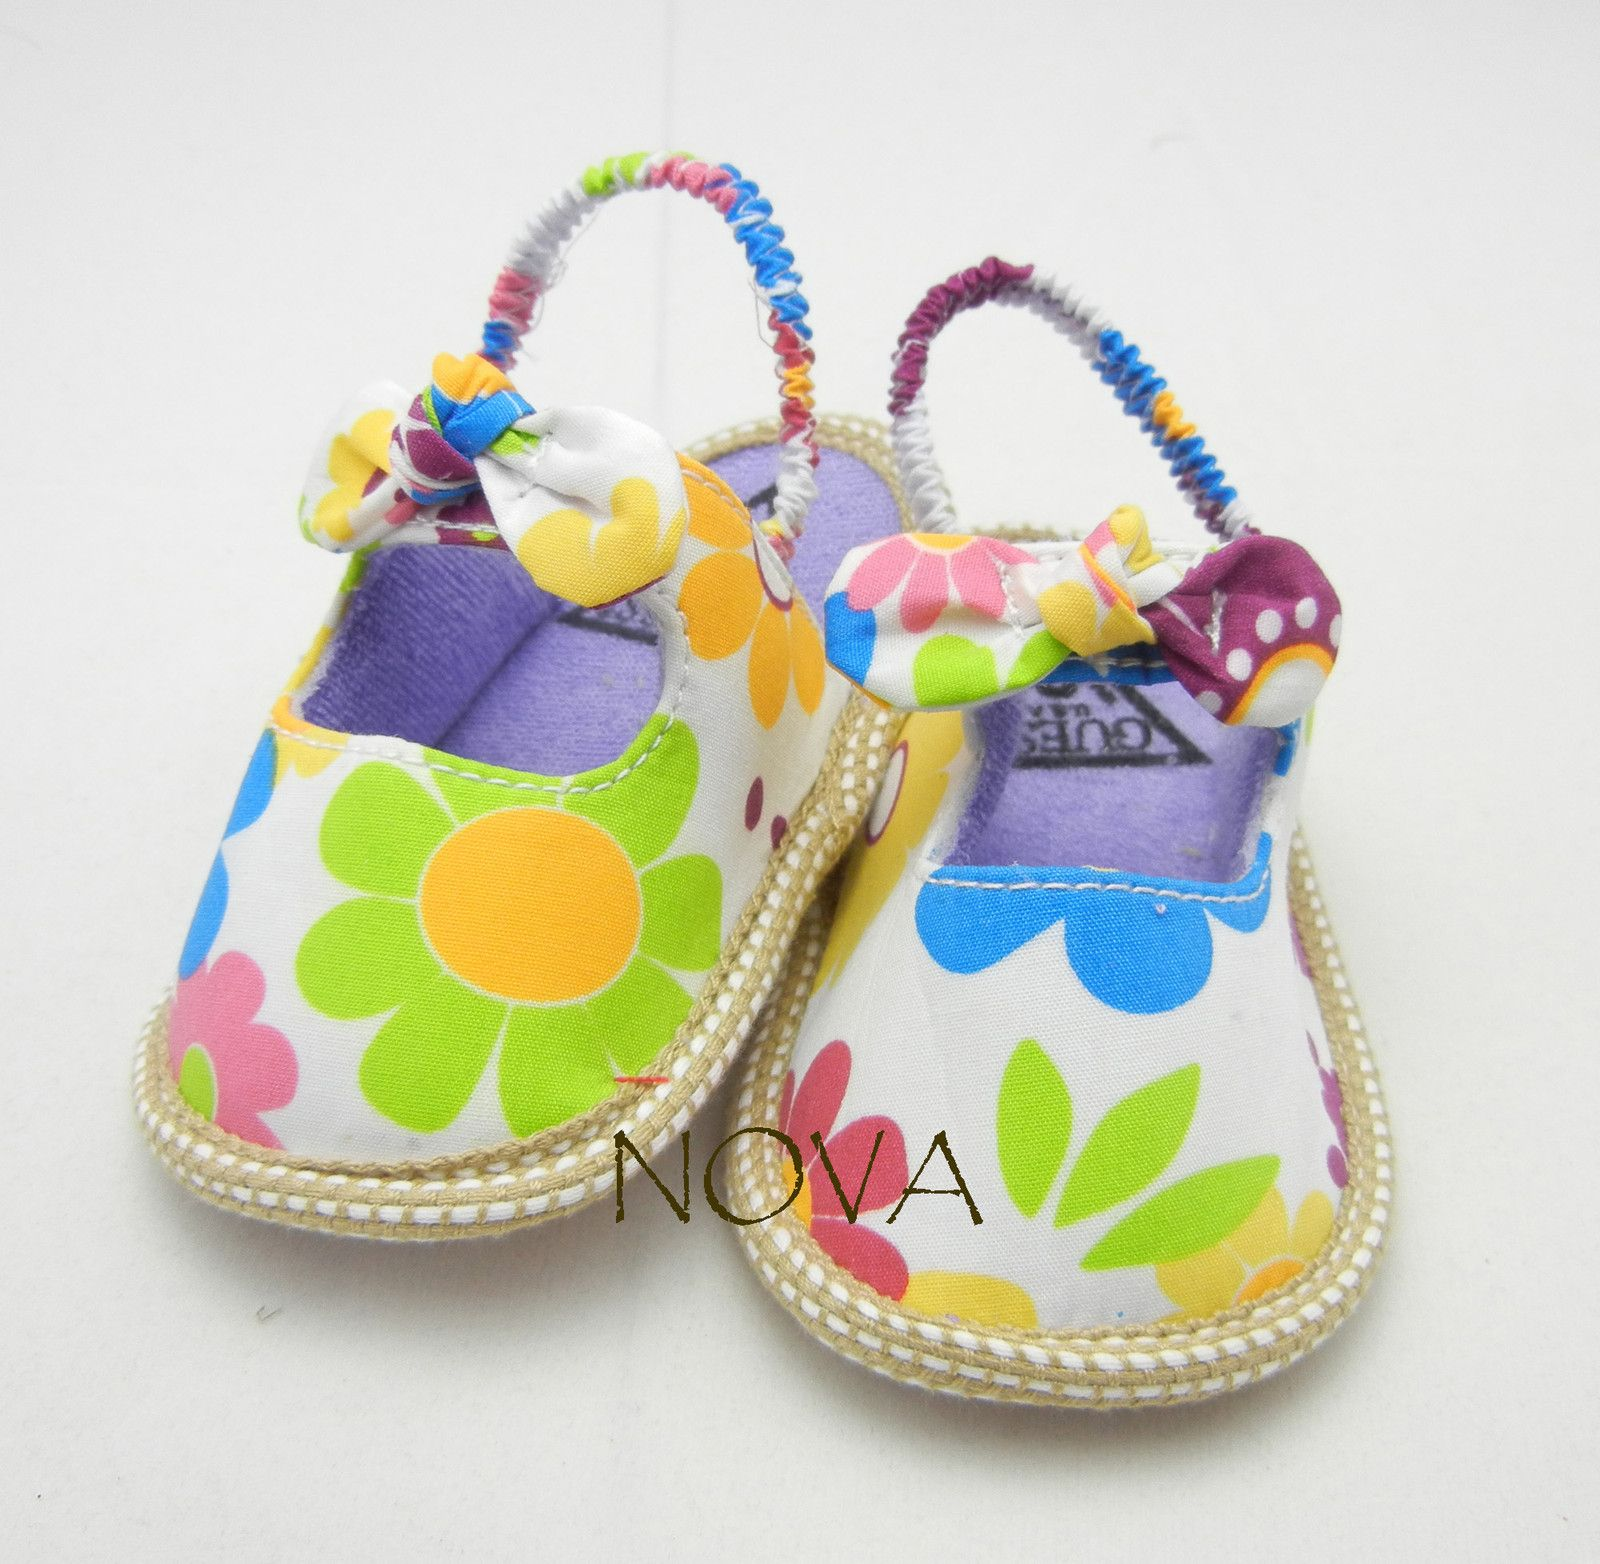 Colorful daisy summer sandels shoes toddler shoes baby girl shoes